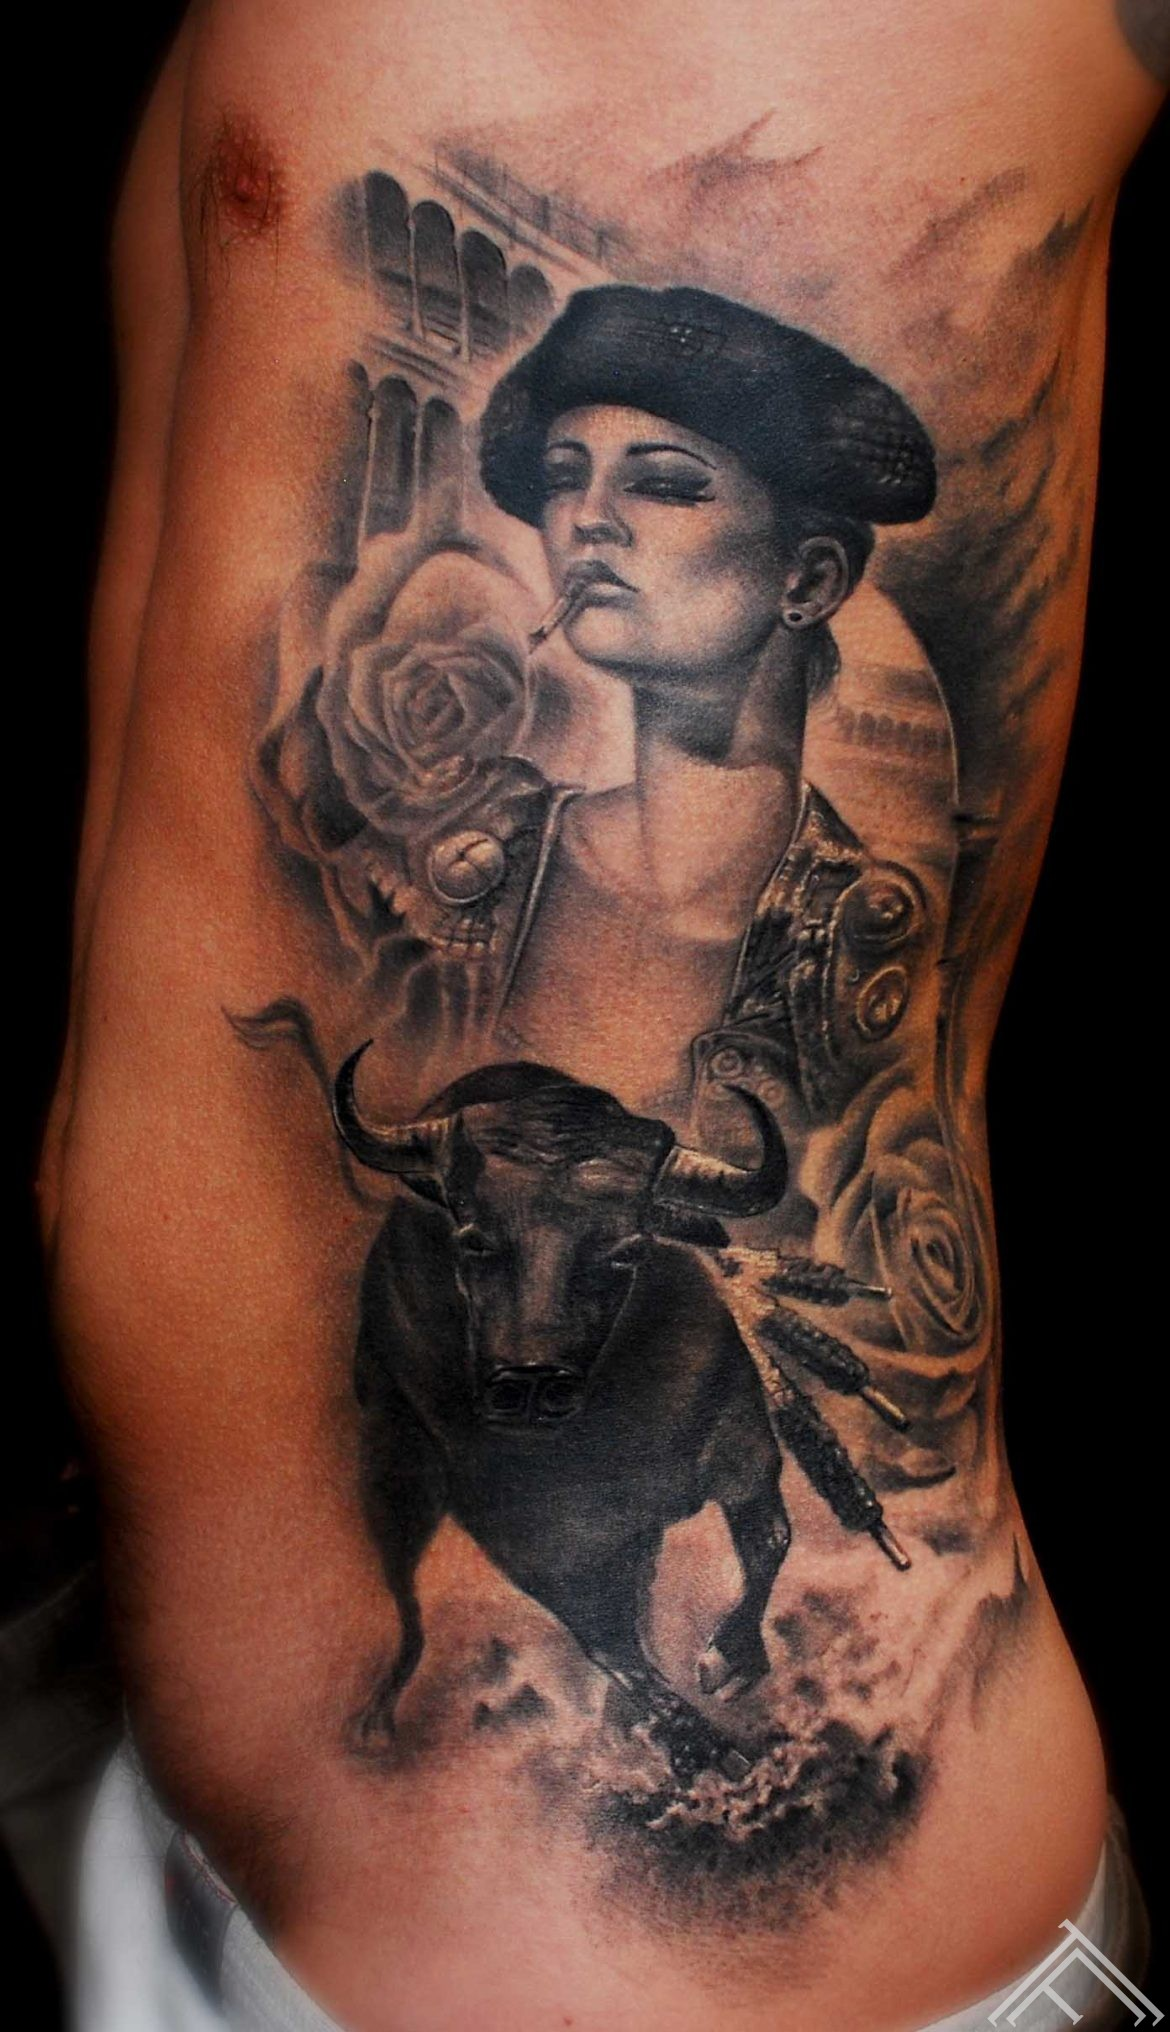 matador_bull_woman_roses_spain_portugal_arena_Brian_m_viveros_tattoo_marispavlo_tattoofrequency_riga_TF